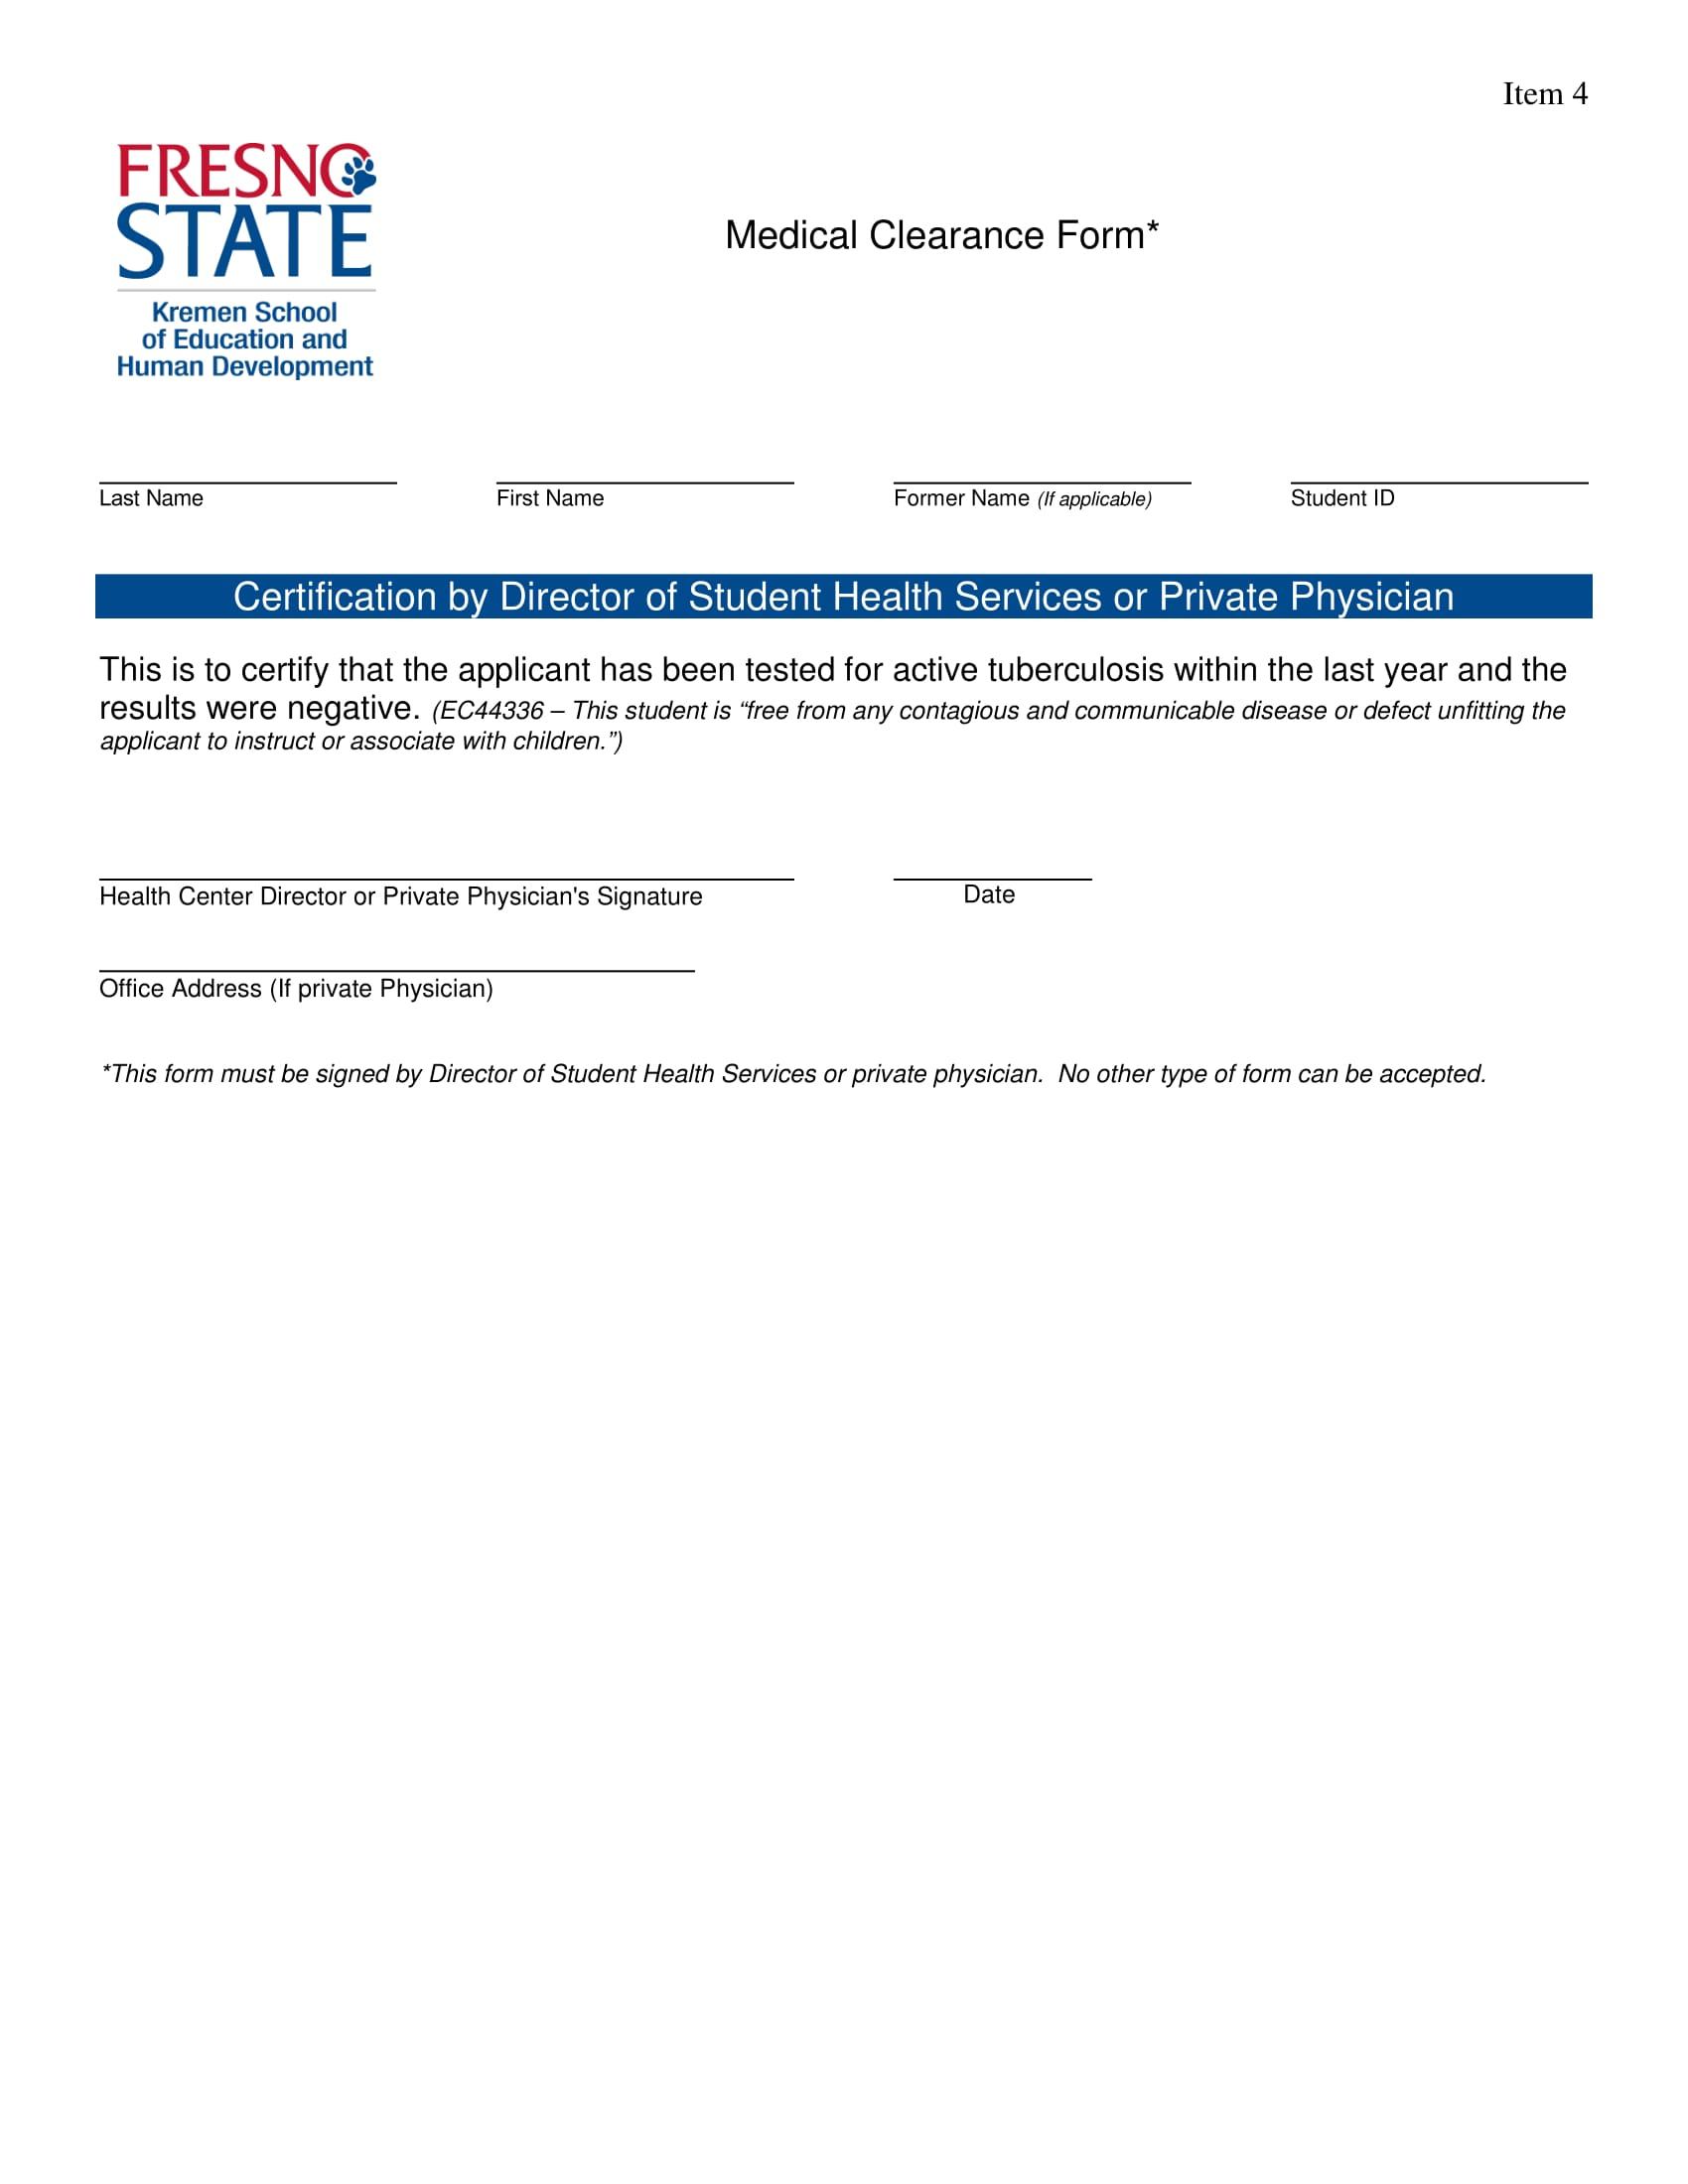 Sample Medical Clearance Form